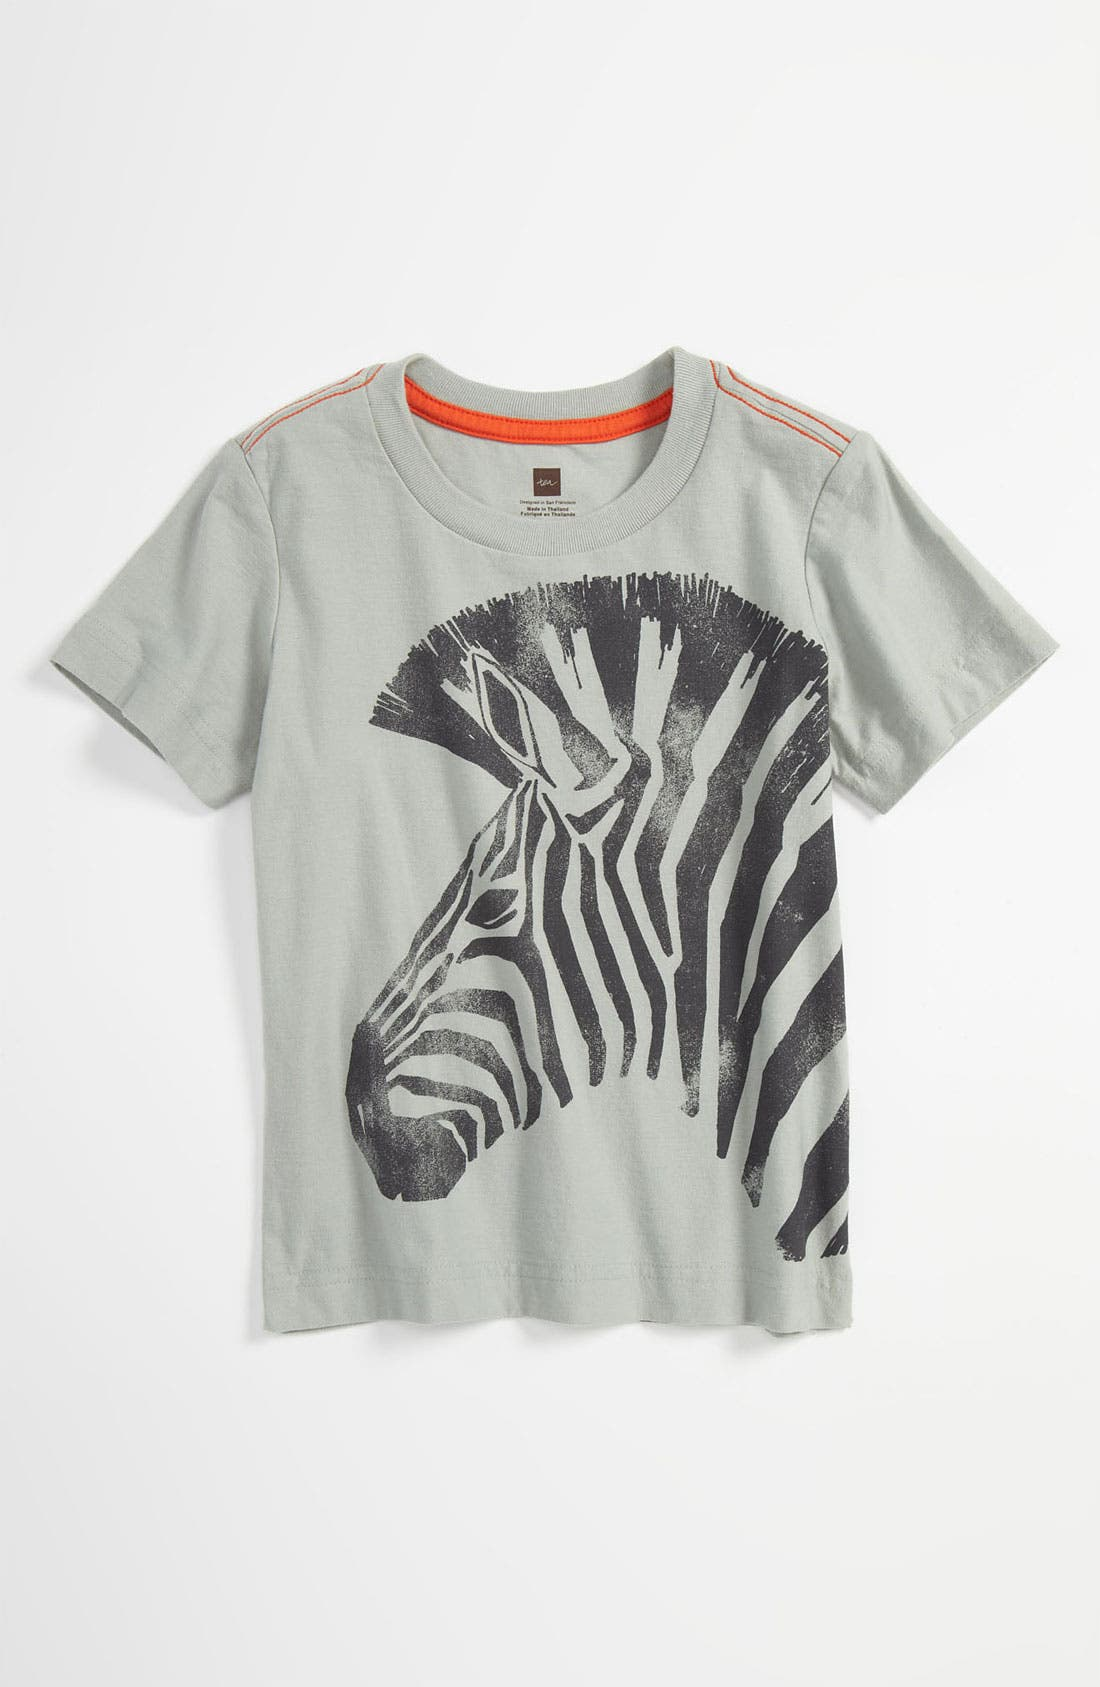 Main Image - Tea Collection 'Zebra' T-Shirt (Toddler)